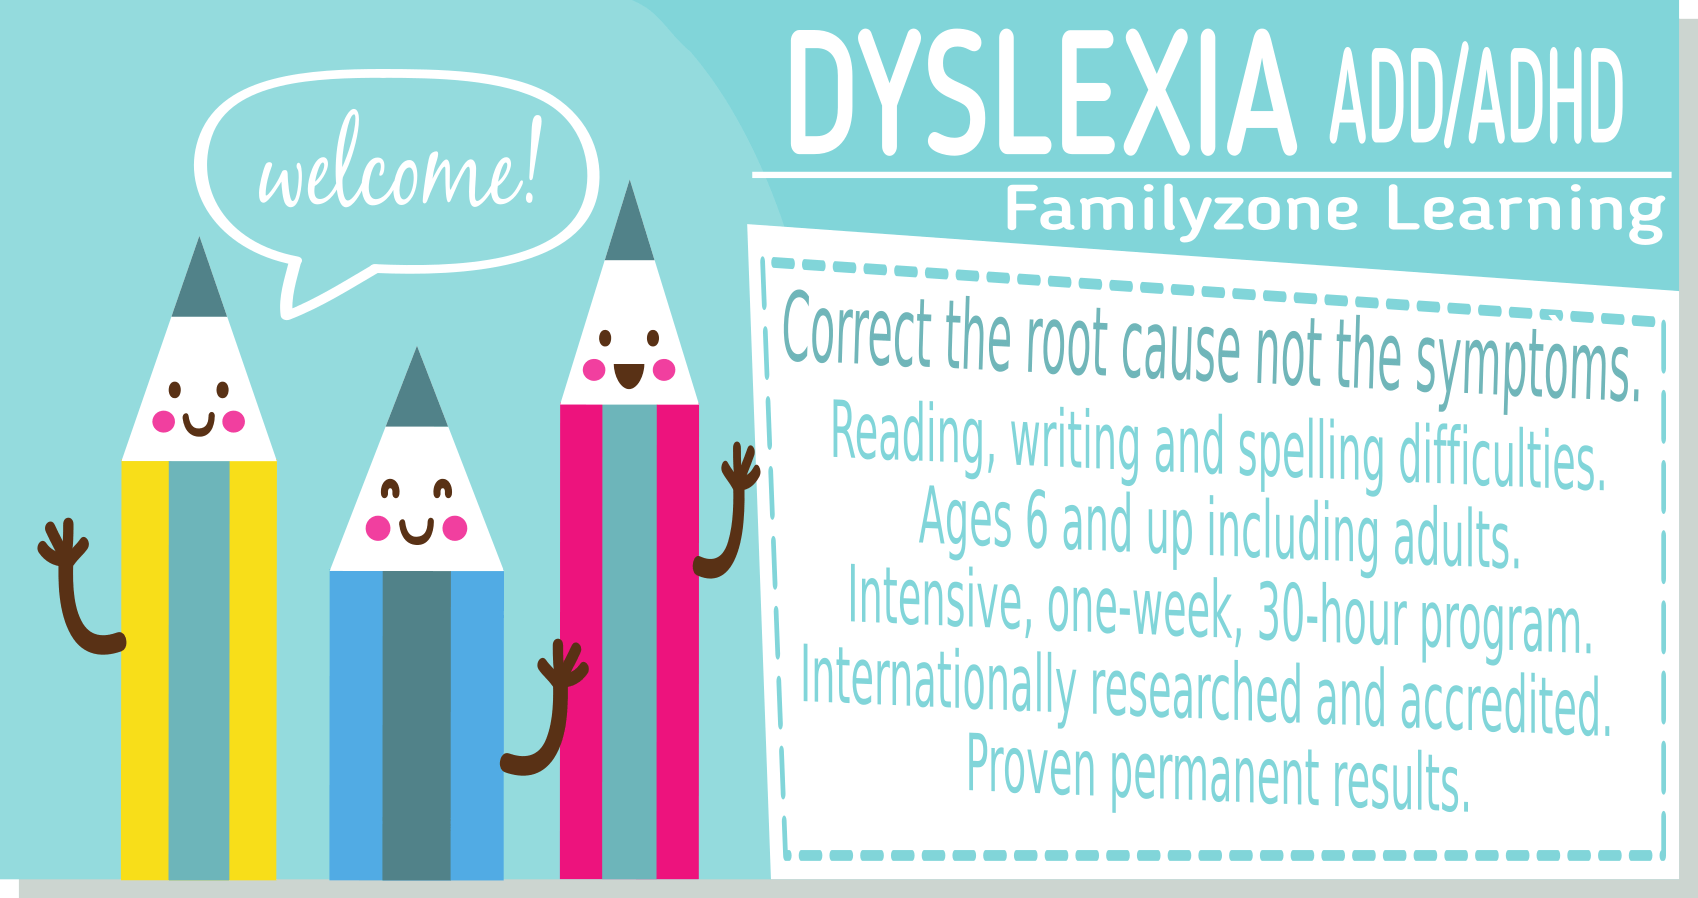 Davis Dyslexia ADHD Therapy Familyzone Learning South Africa. For all ages. Proven permanent results.